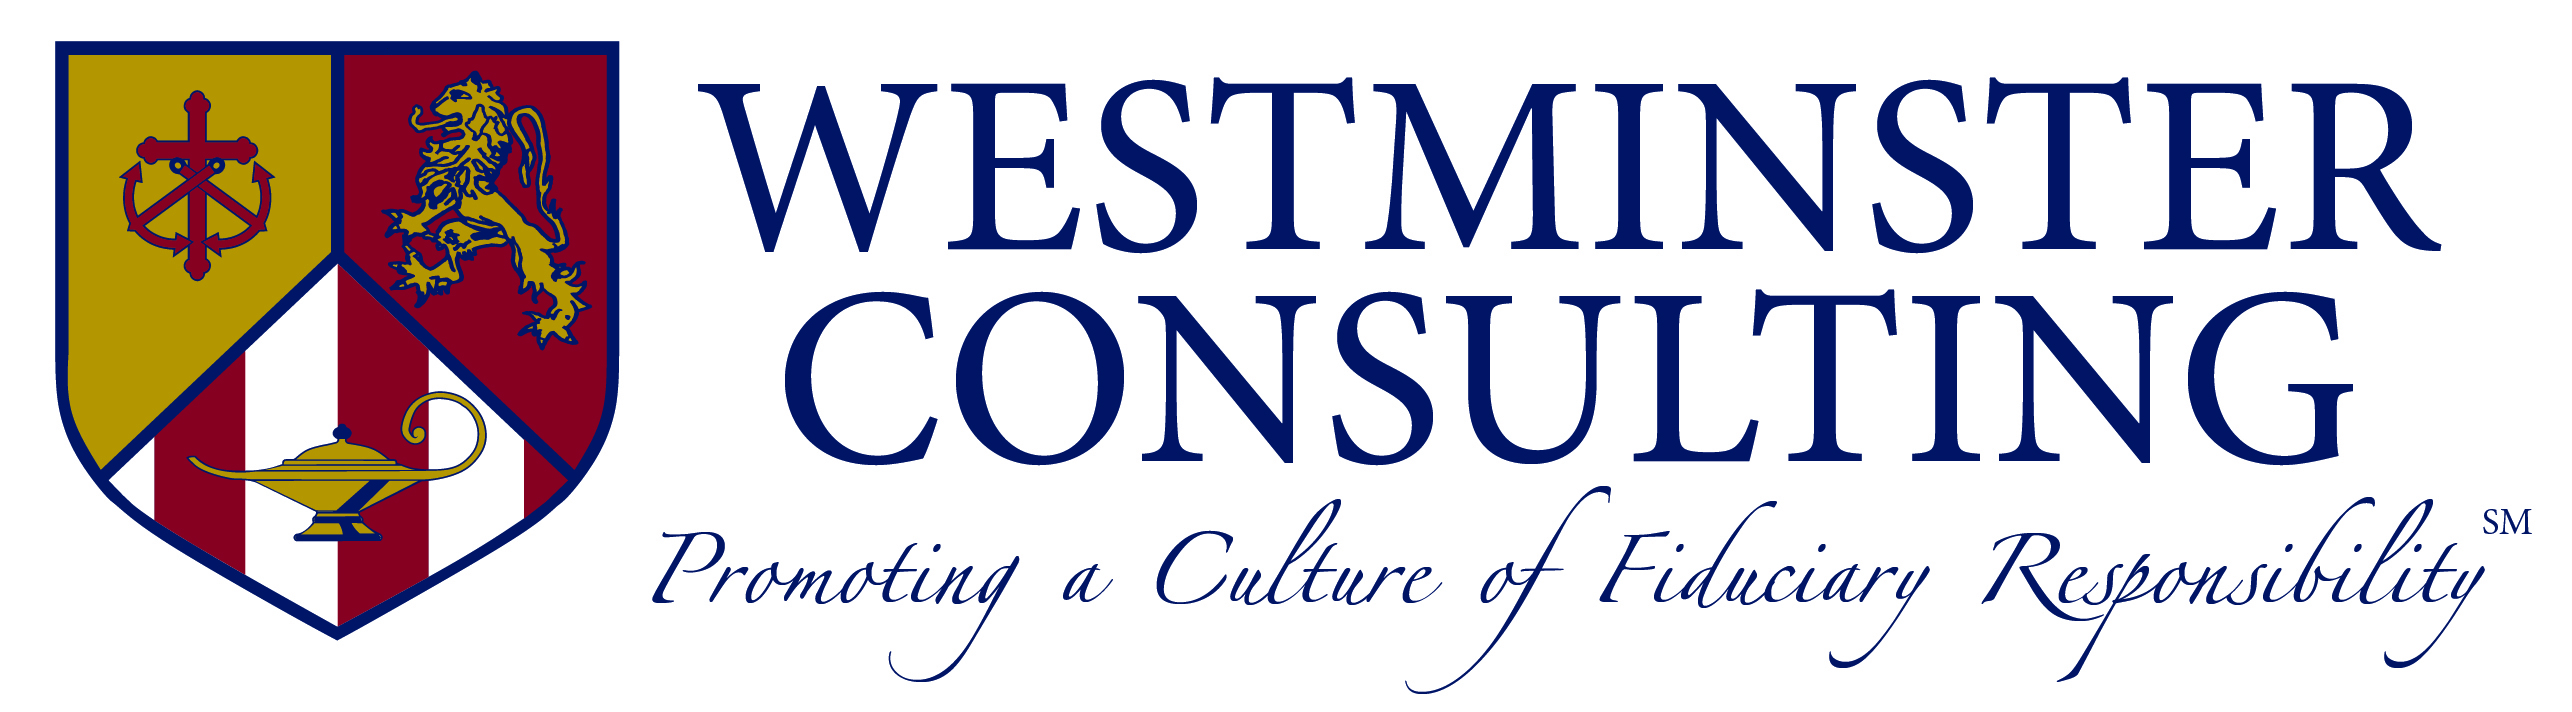 WestminsterLogo HR.jpg - Our Journey, Our Springbrook